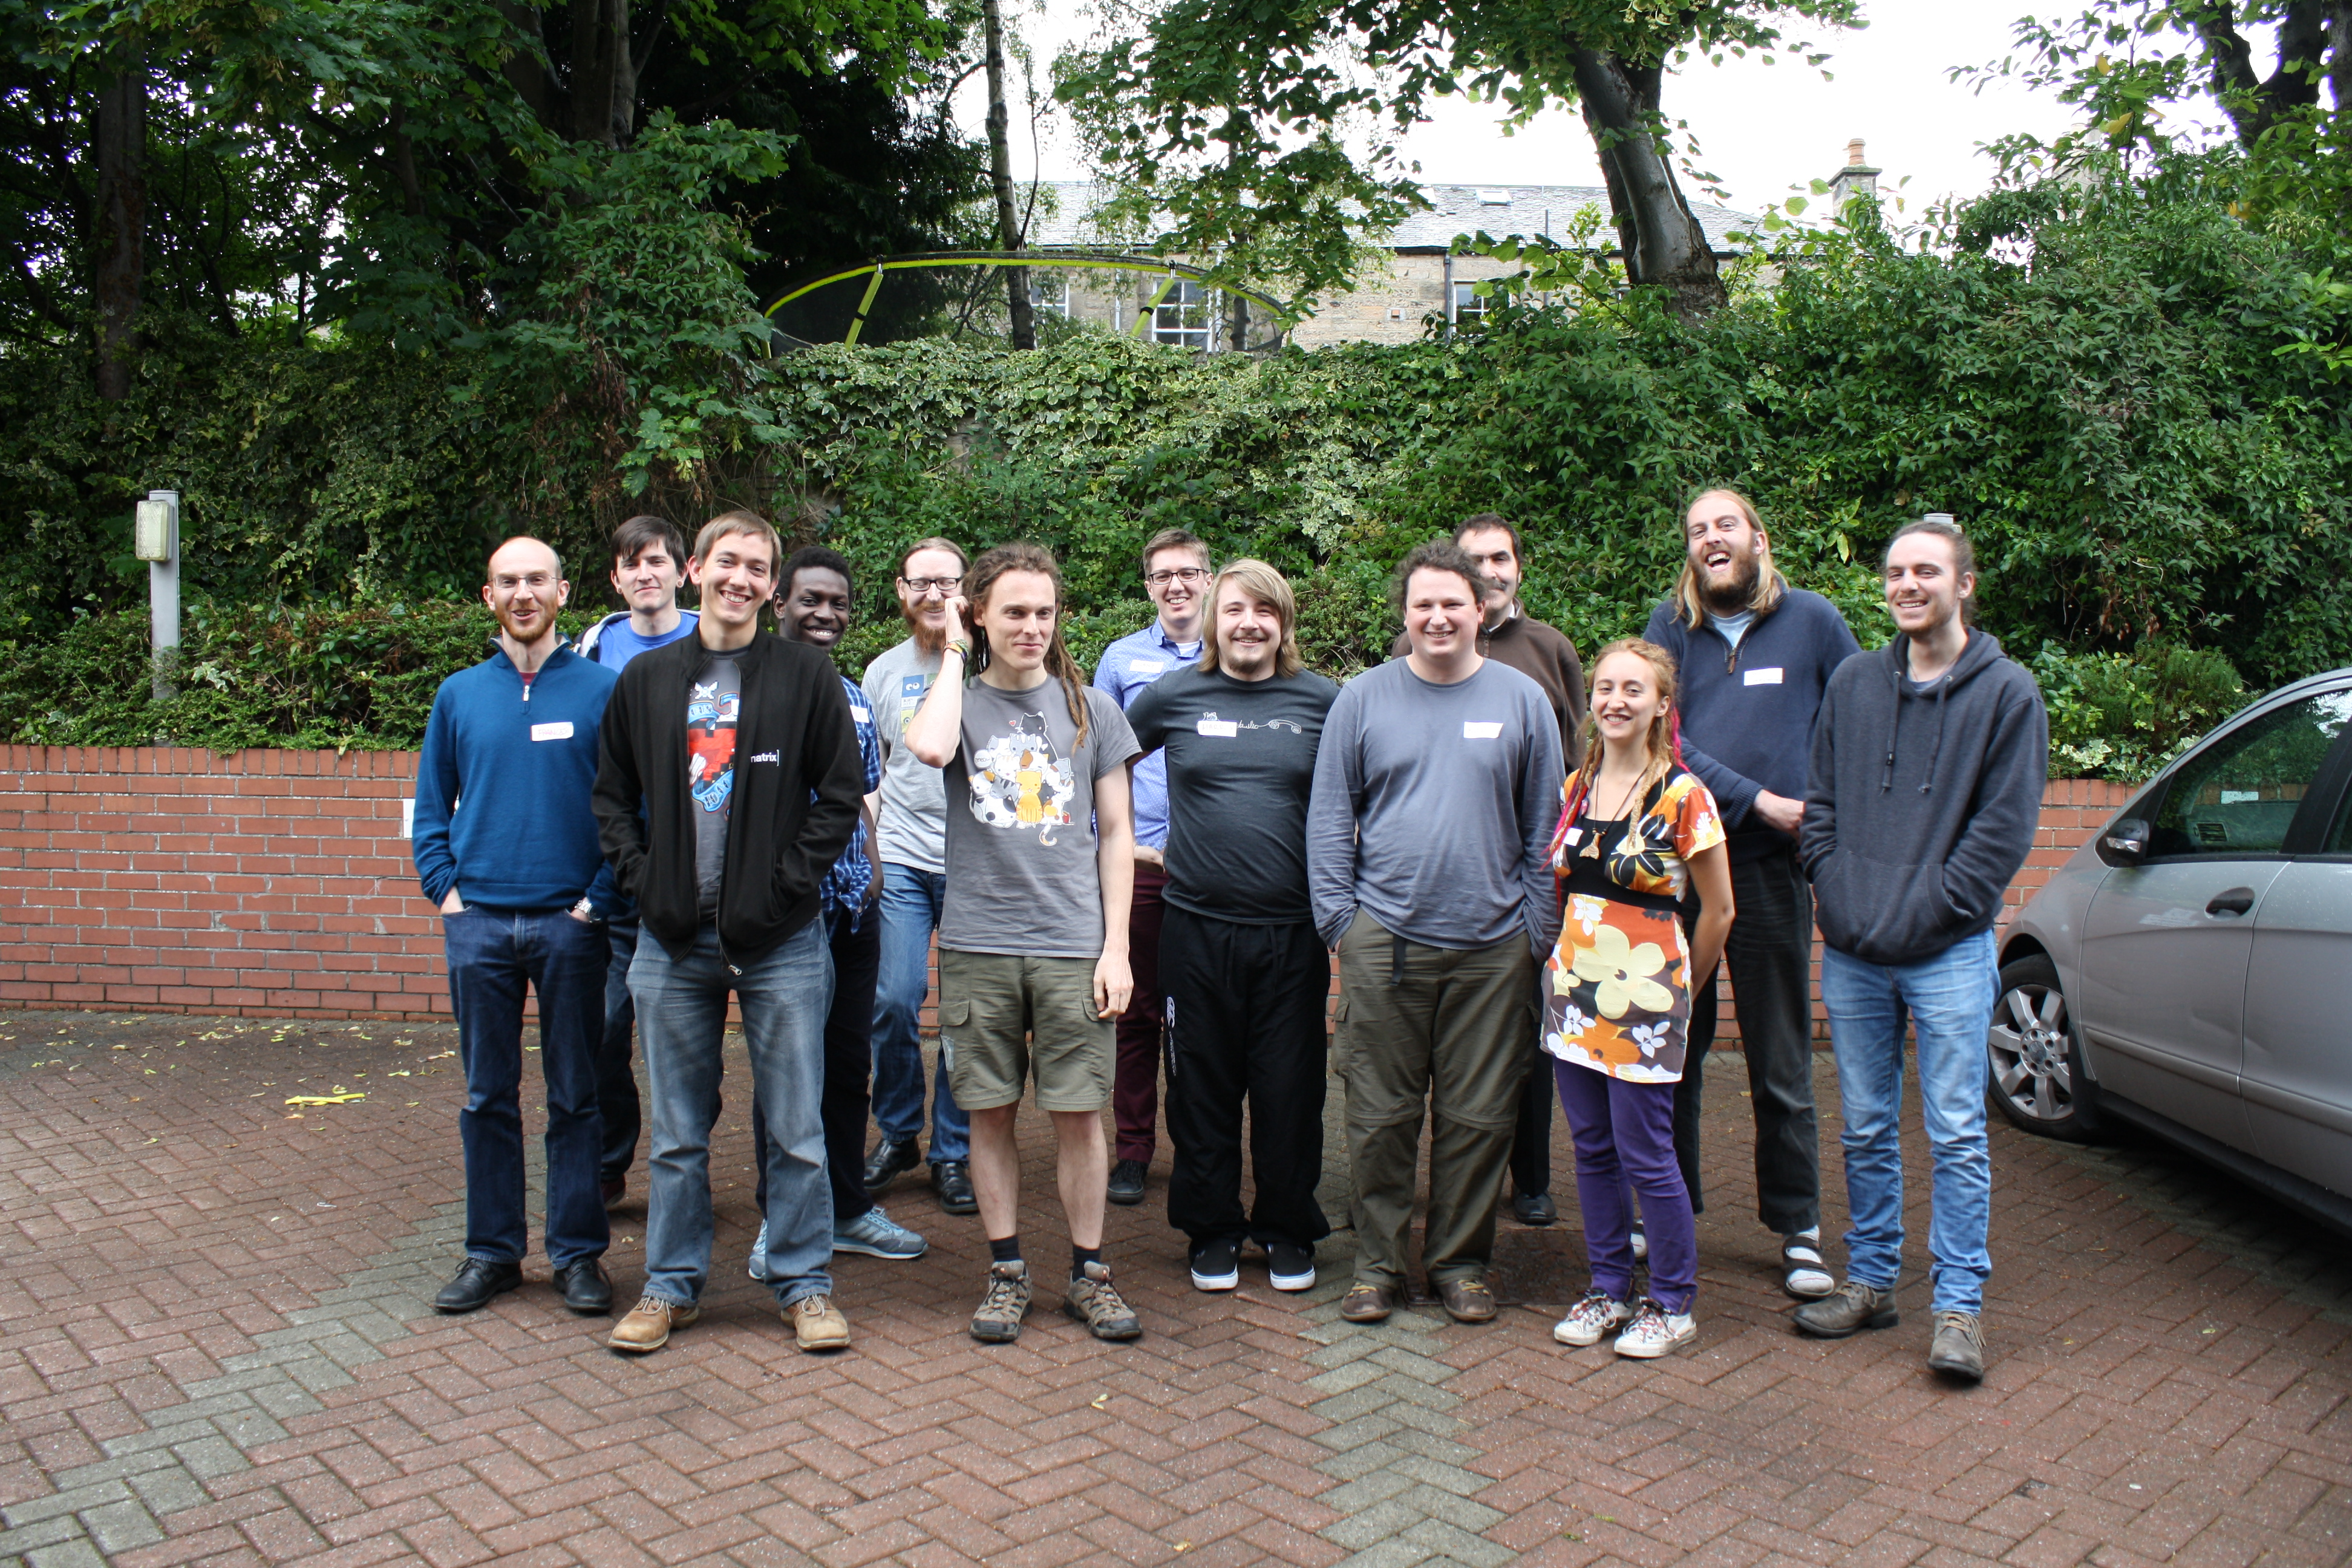 IndieWebCamp Edinburgh group photo